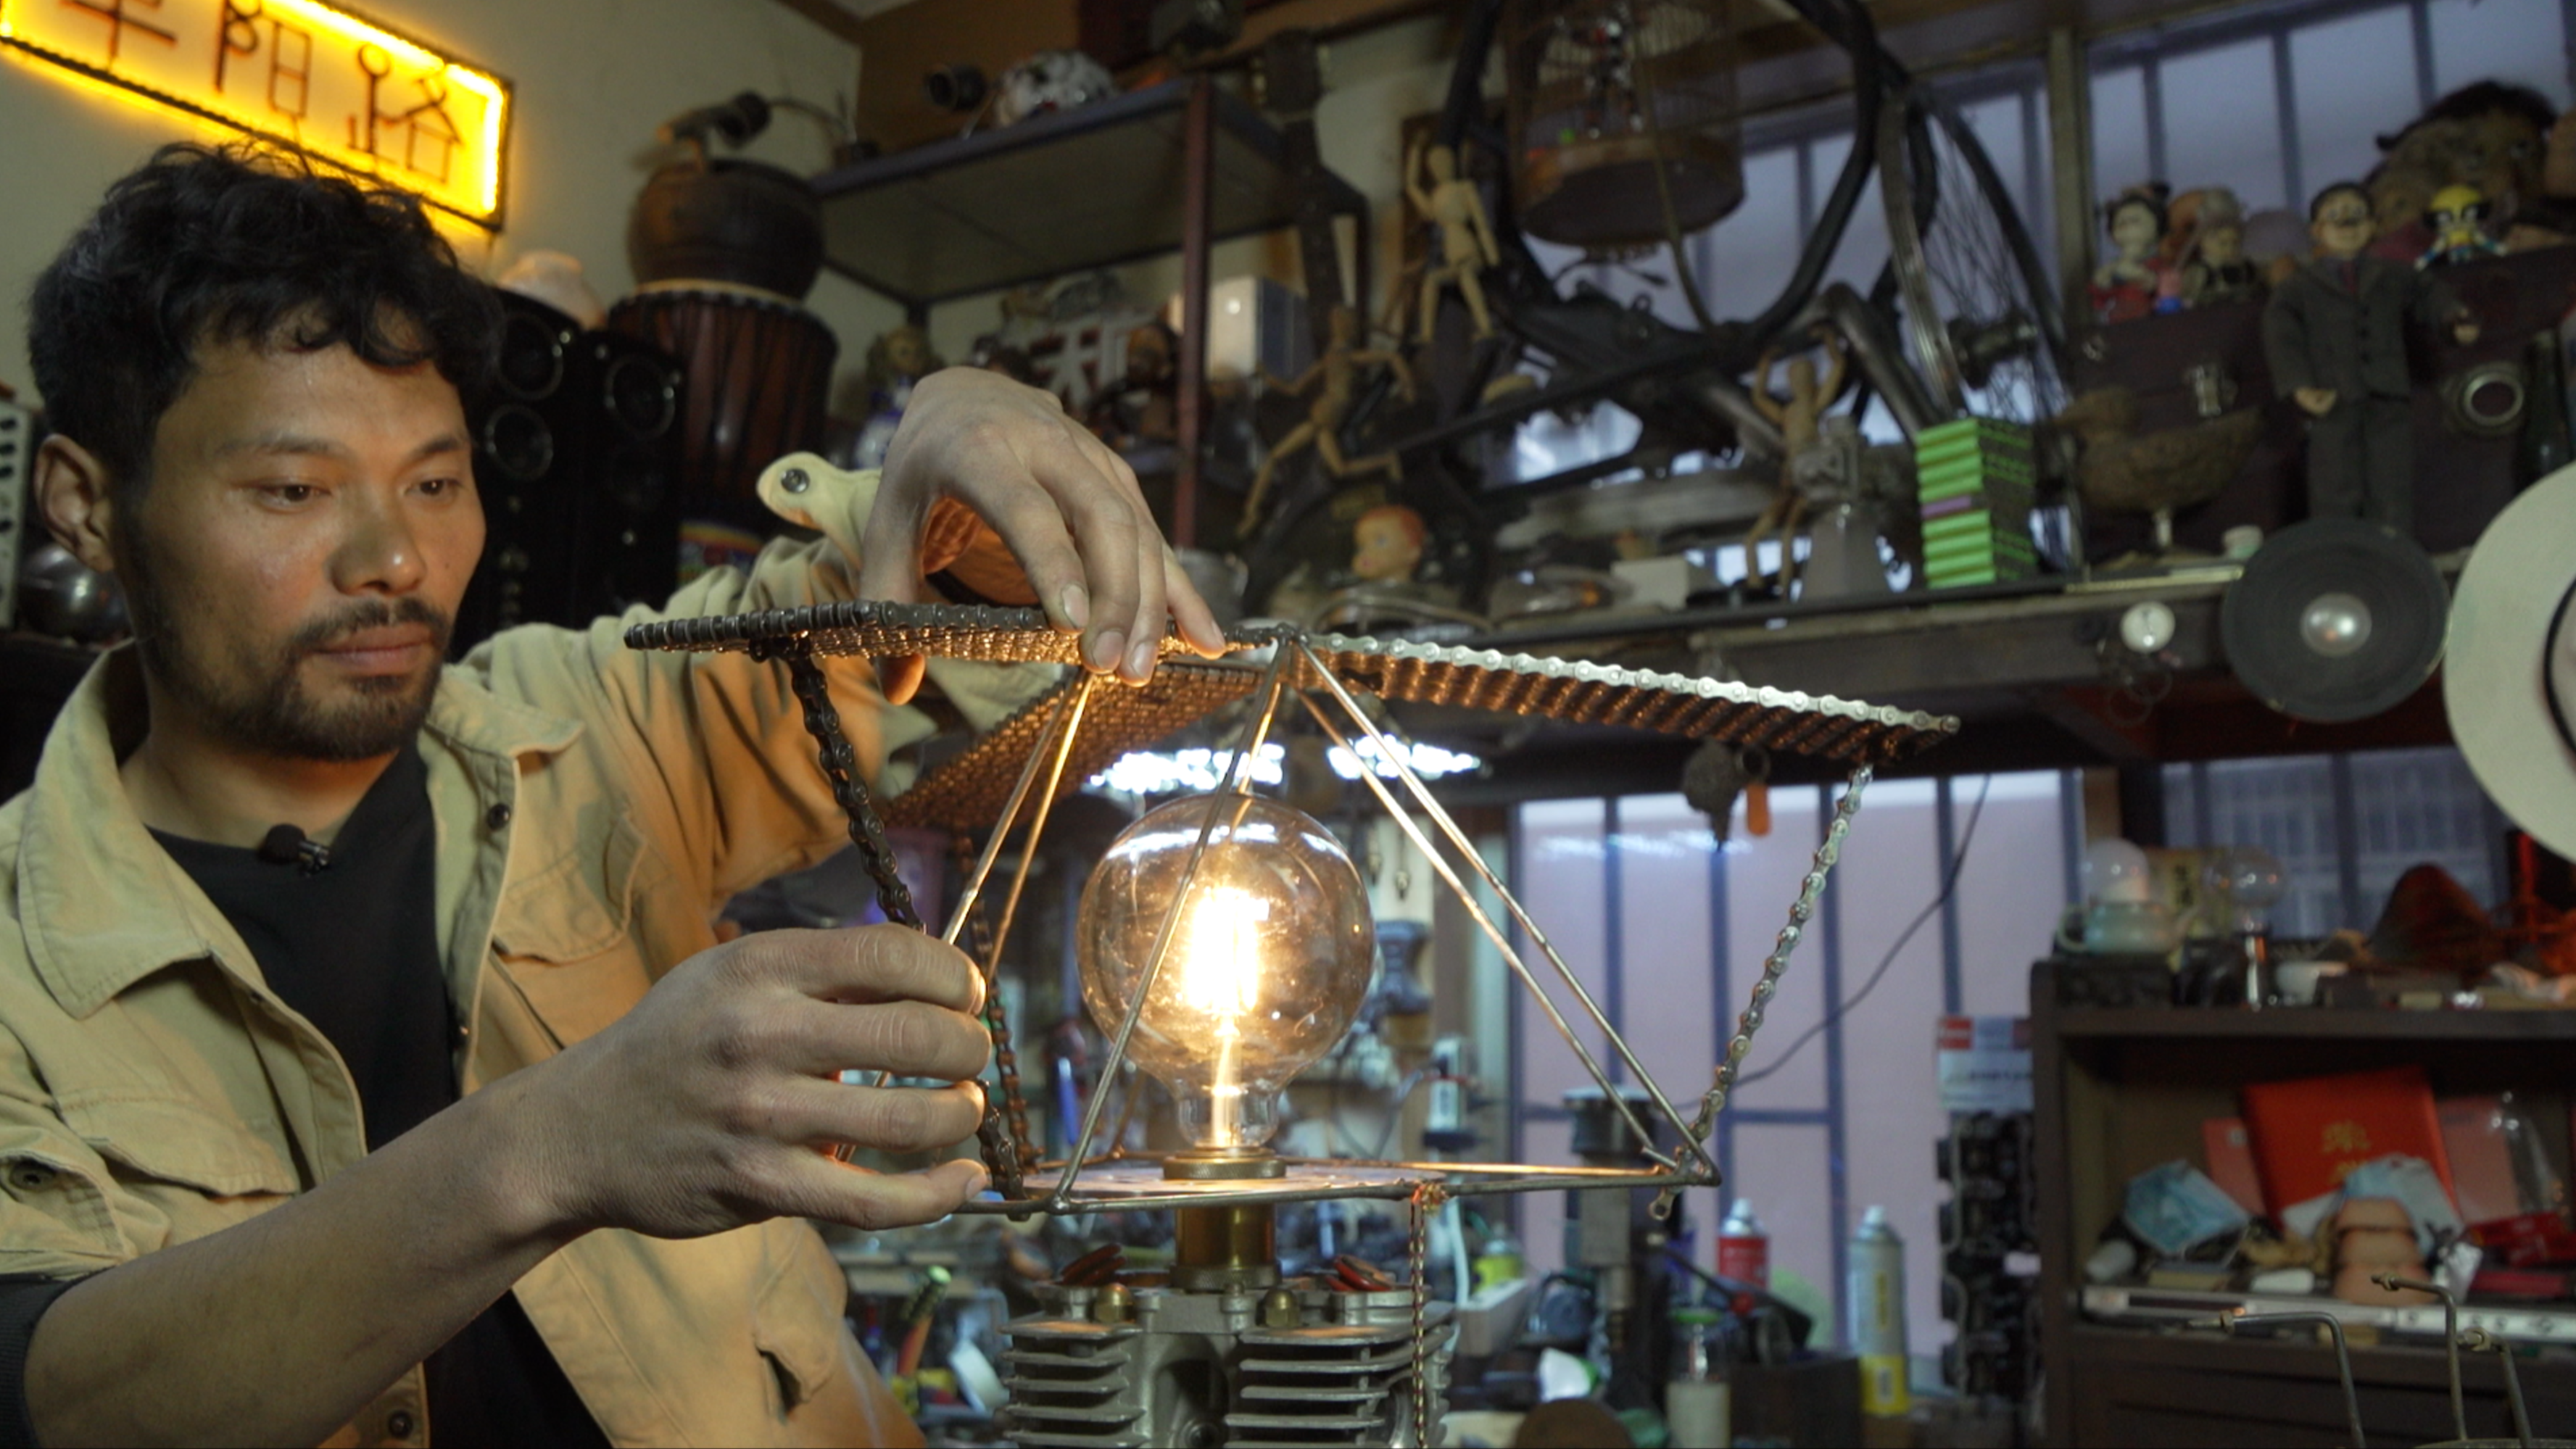 A man builds a sculptural lamp out of leftover motorbike parts in his cluttered studio.